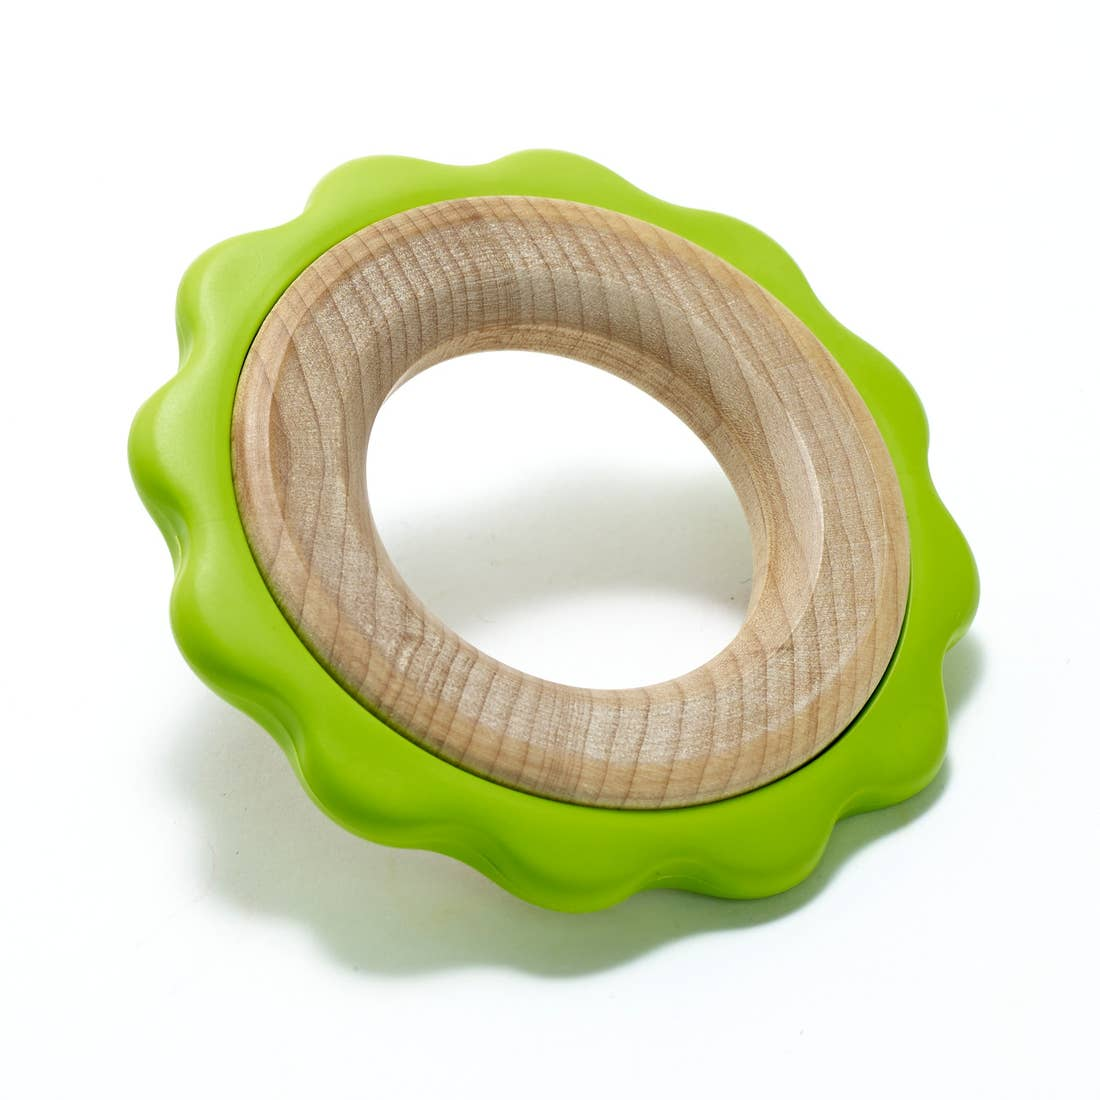 Green Ring Teether - Made in the USA!